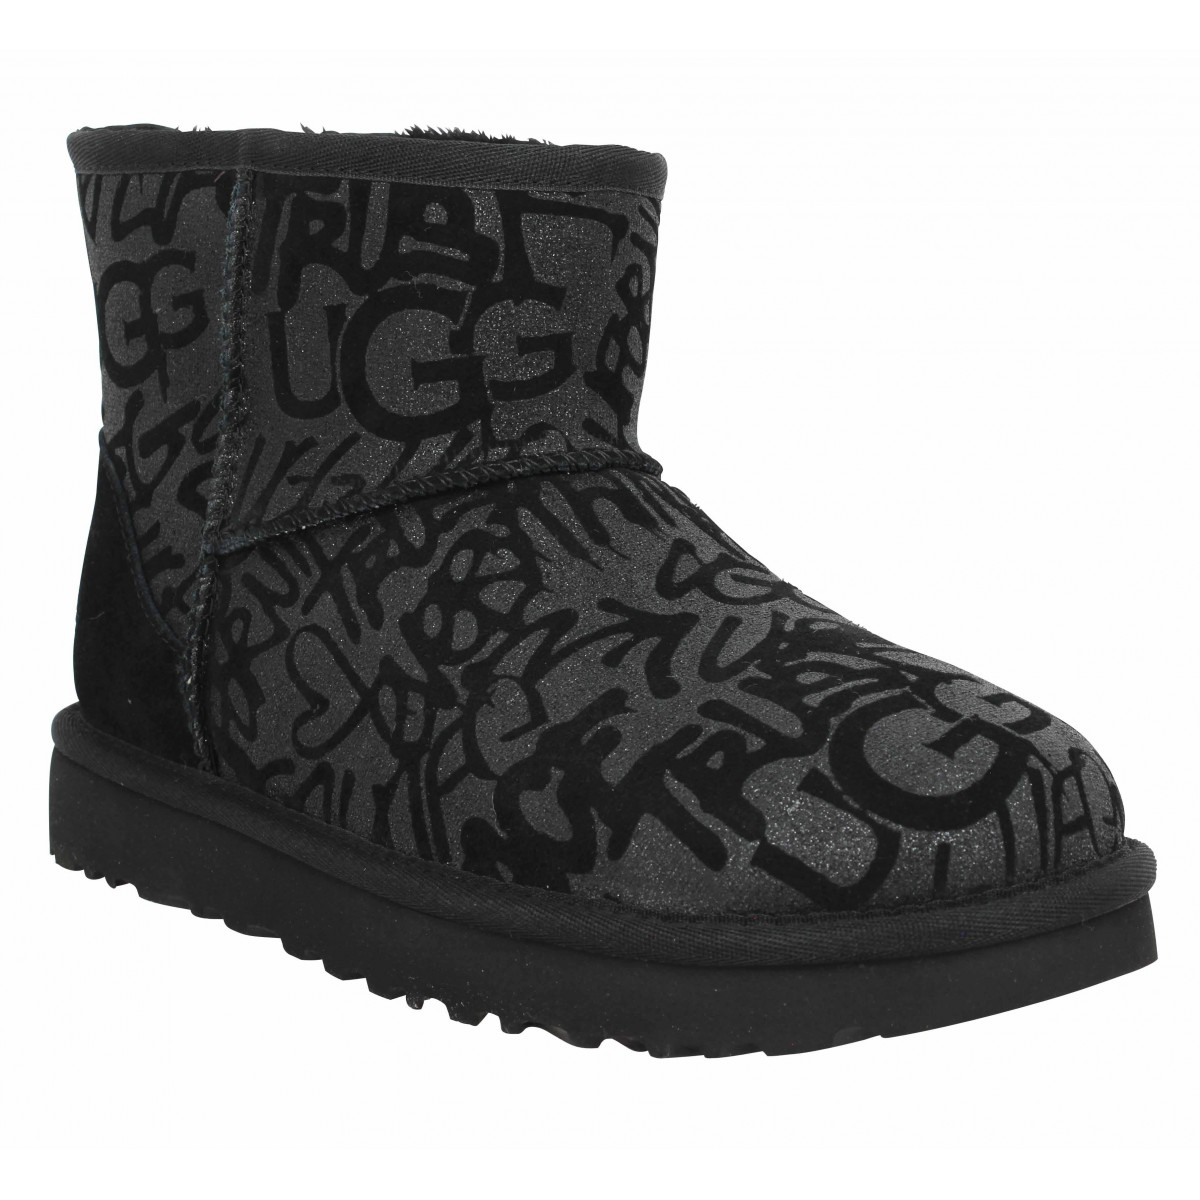 Bottines UGG Classic Mini Sparkle Graffiti velours Femme Noir